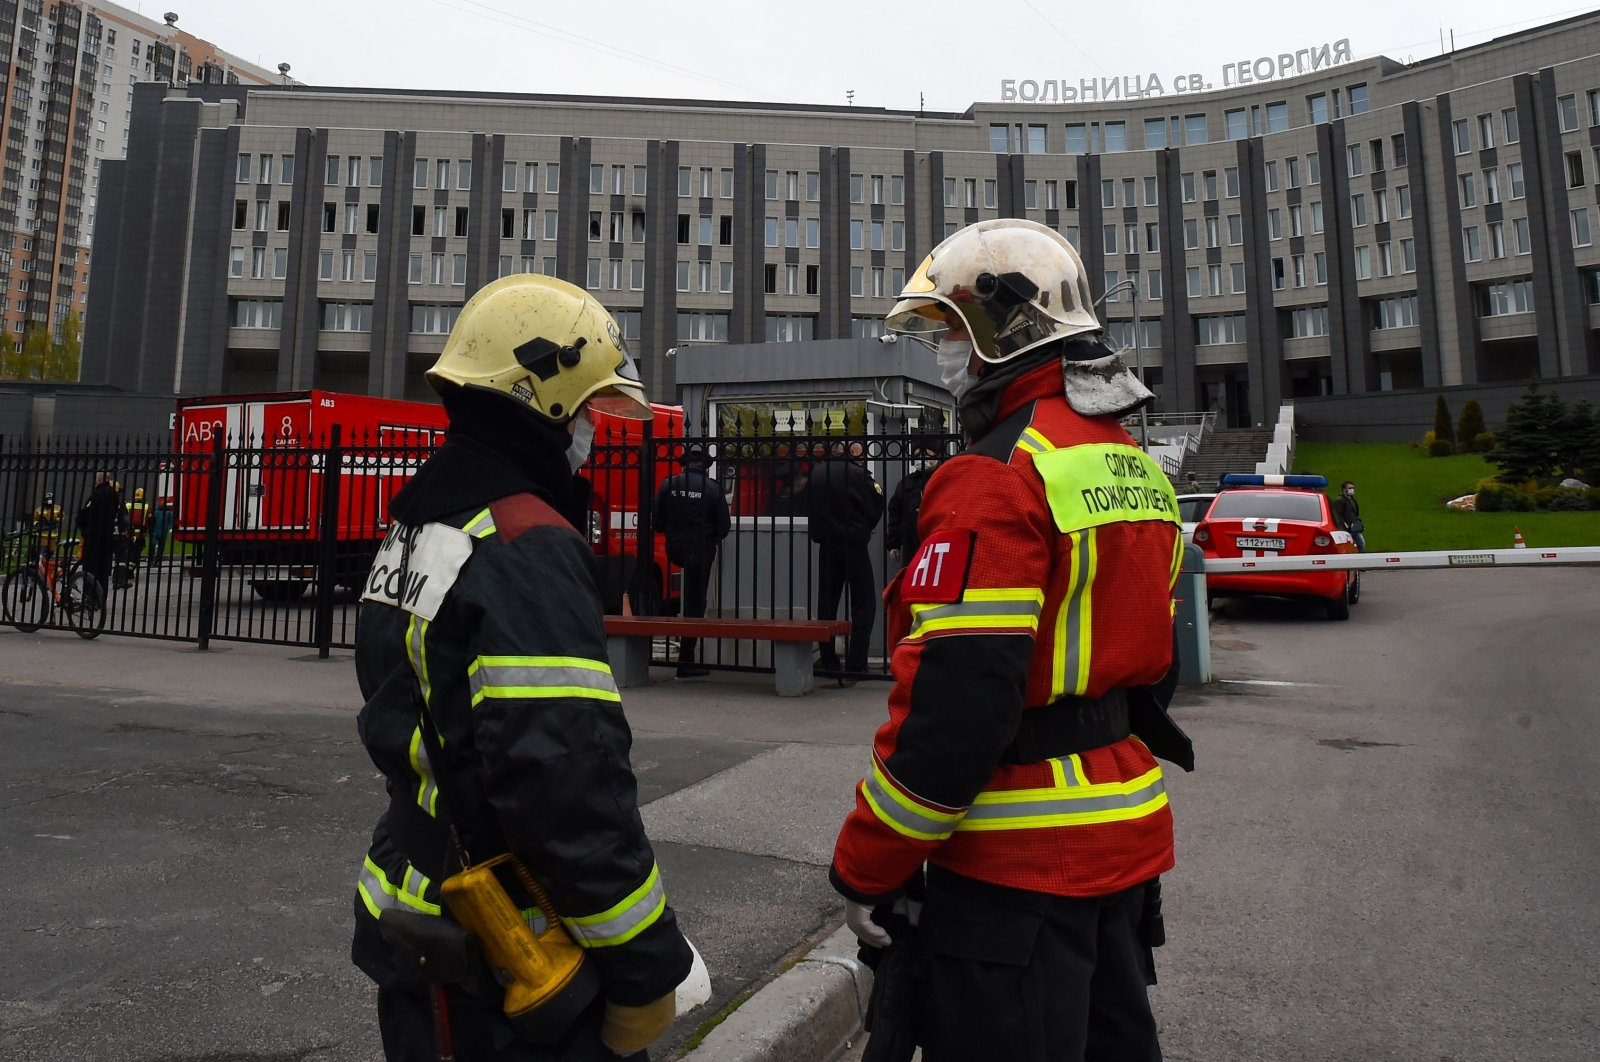 Firefighters work at the site of a fire at the Saint George hospital in Saint Petersburg, Russia, May 12, 2020. (AFP Photo)